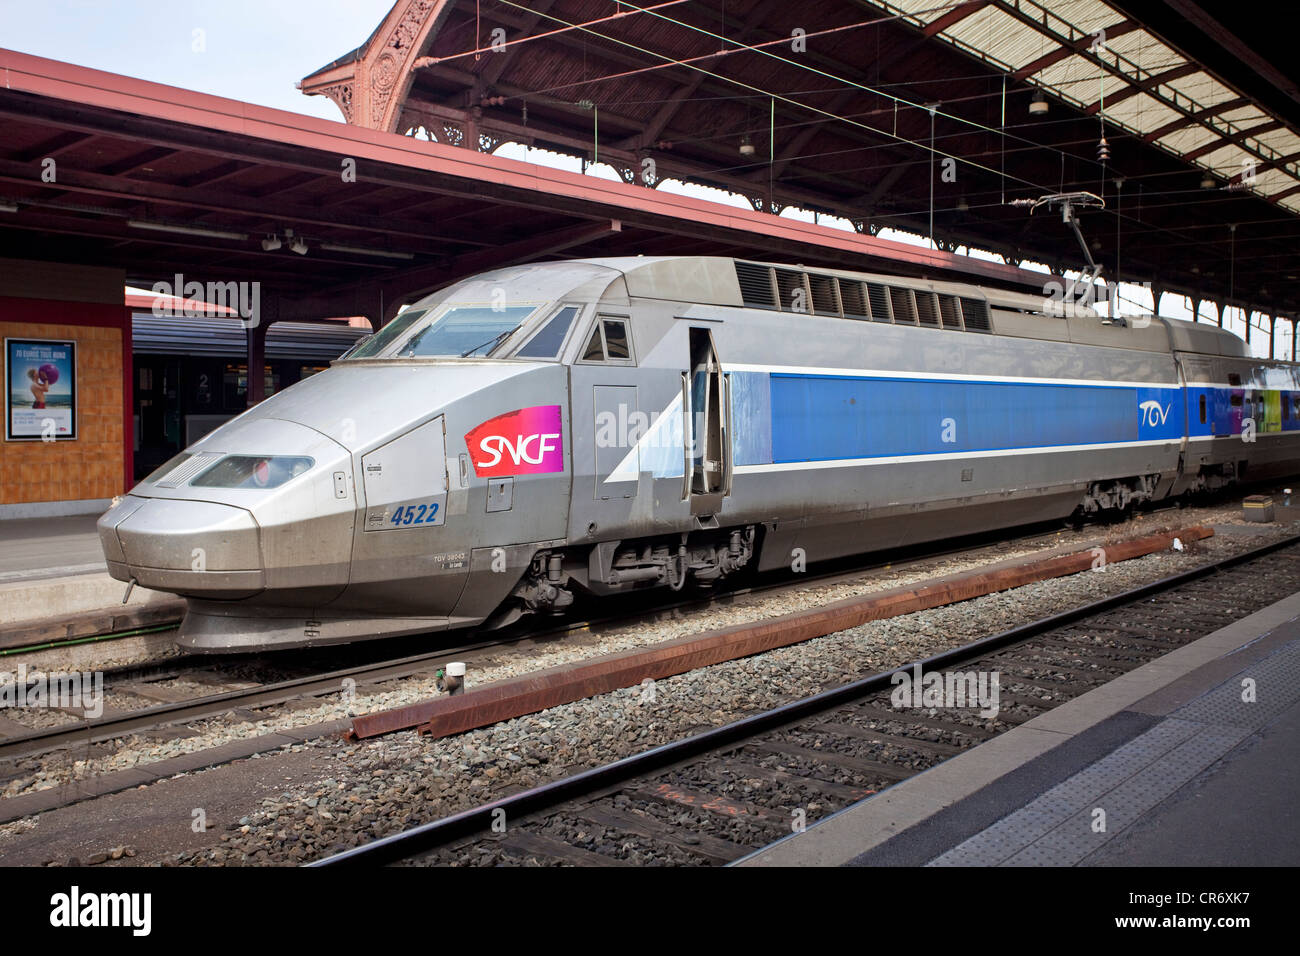 Train à Grande Vitesse, TGV high speed train, can go up to 320 km/h,  Central Station, , Alsace, France, Europe - Stock Image